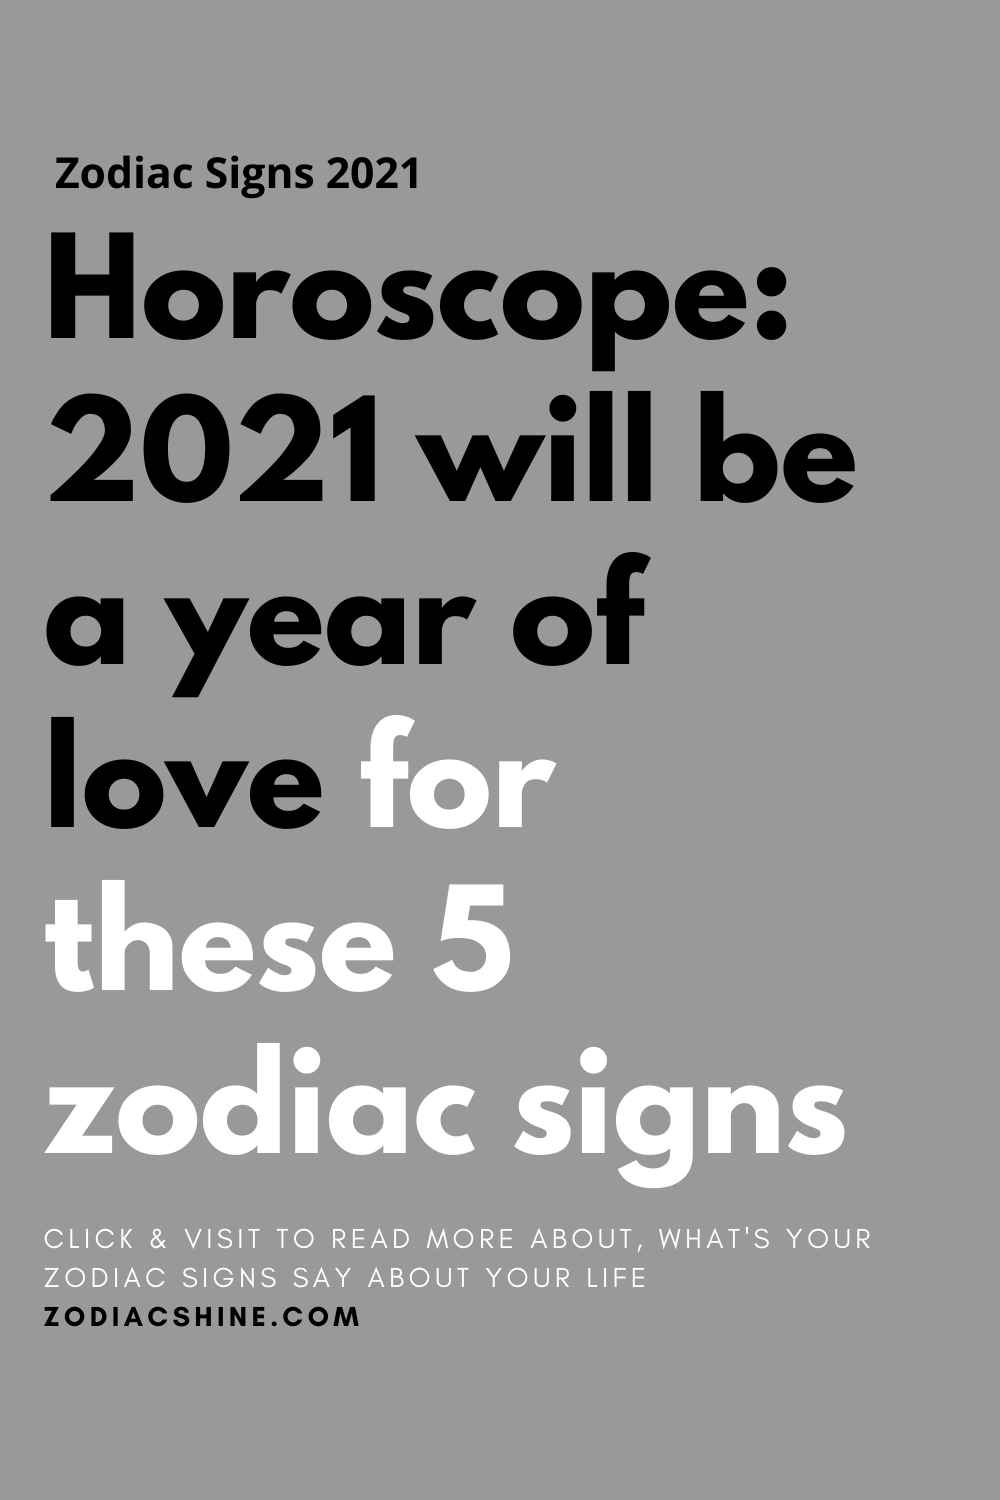 Horoscope: 2021 will be a year of love for these 5 zodiac signs